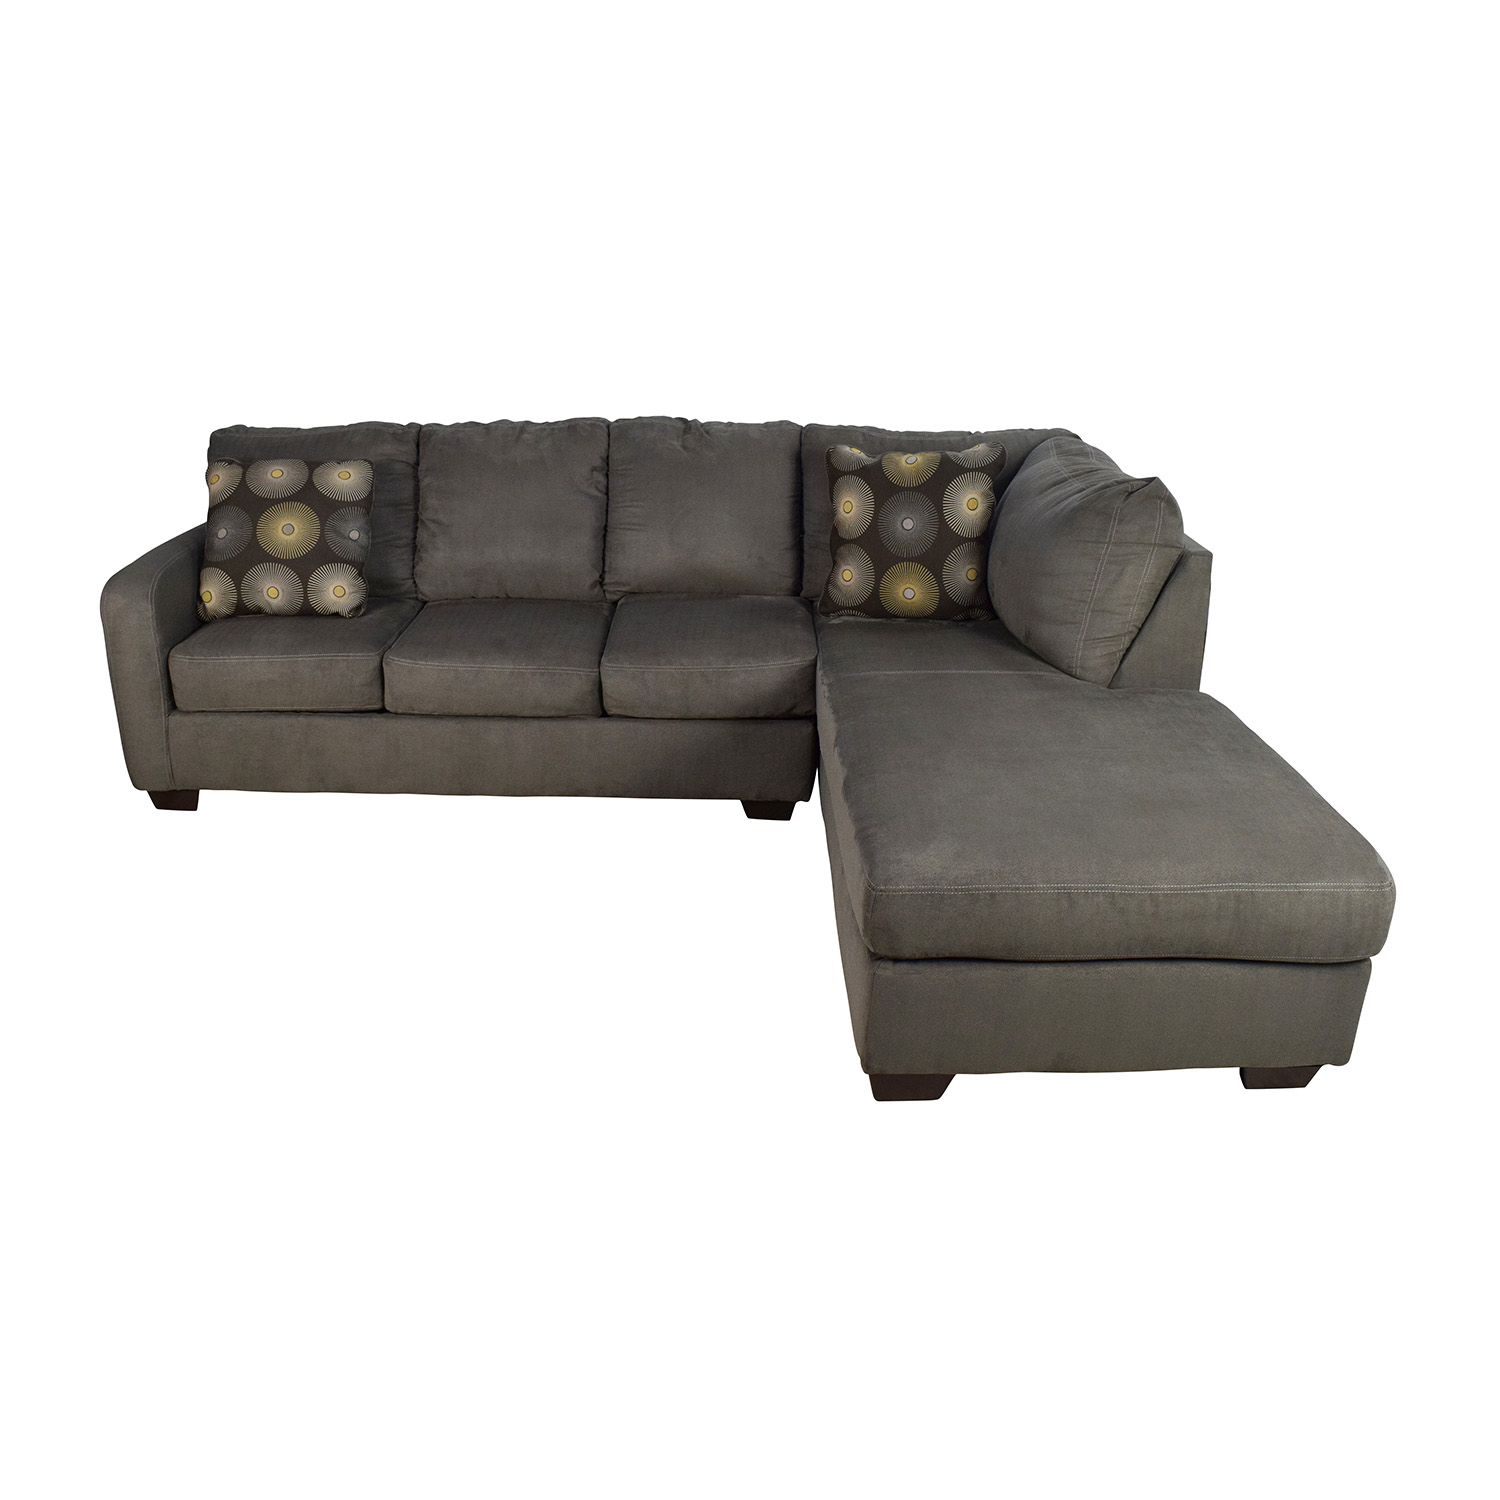 Ashley Furniture Waverly Gray Sectional Sofa